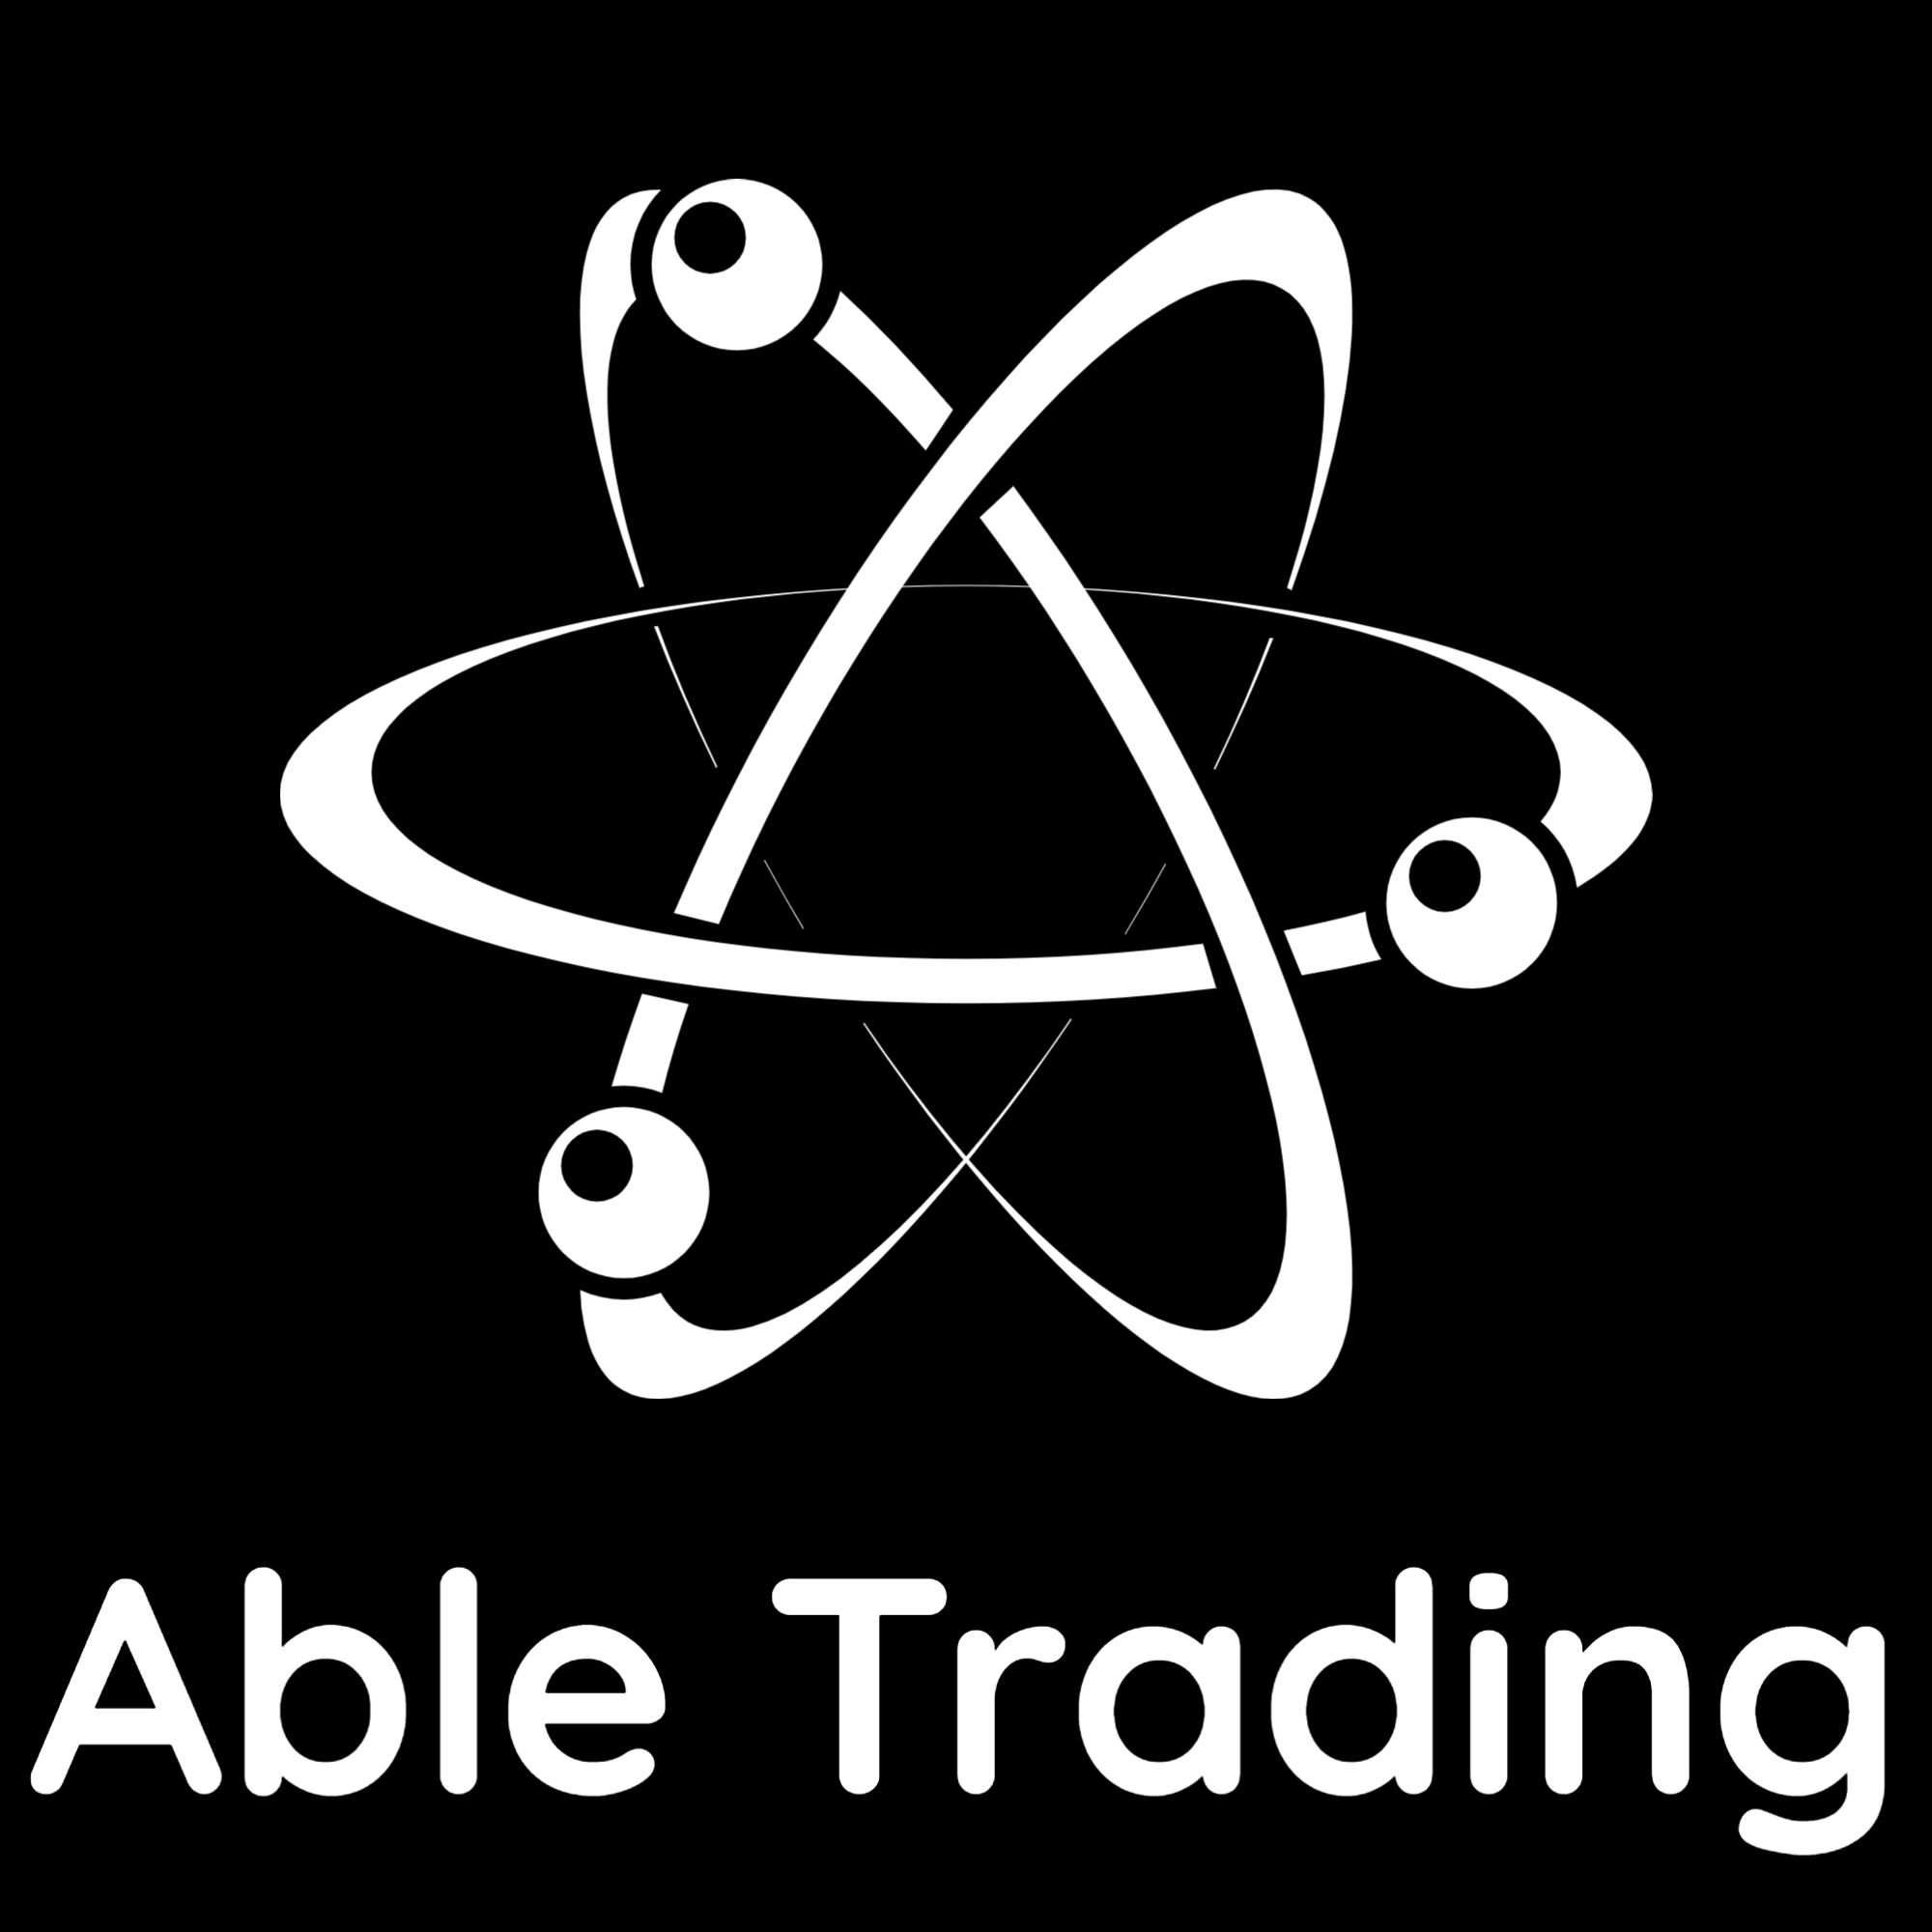 Able Trading